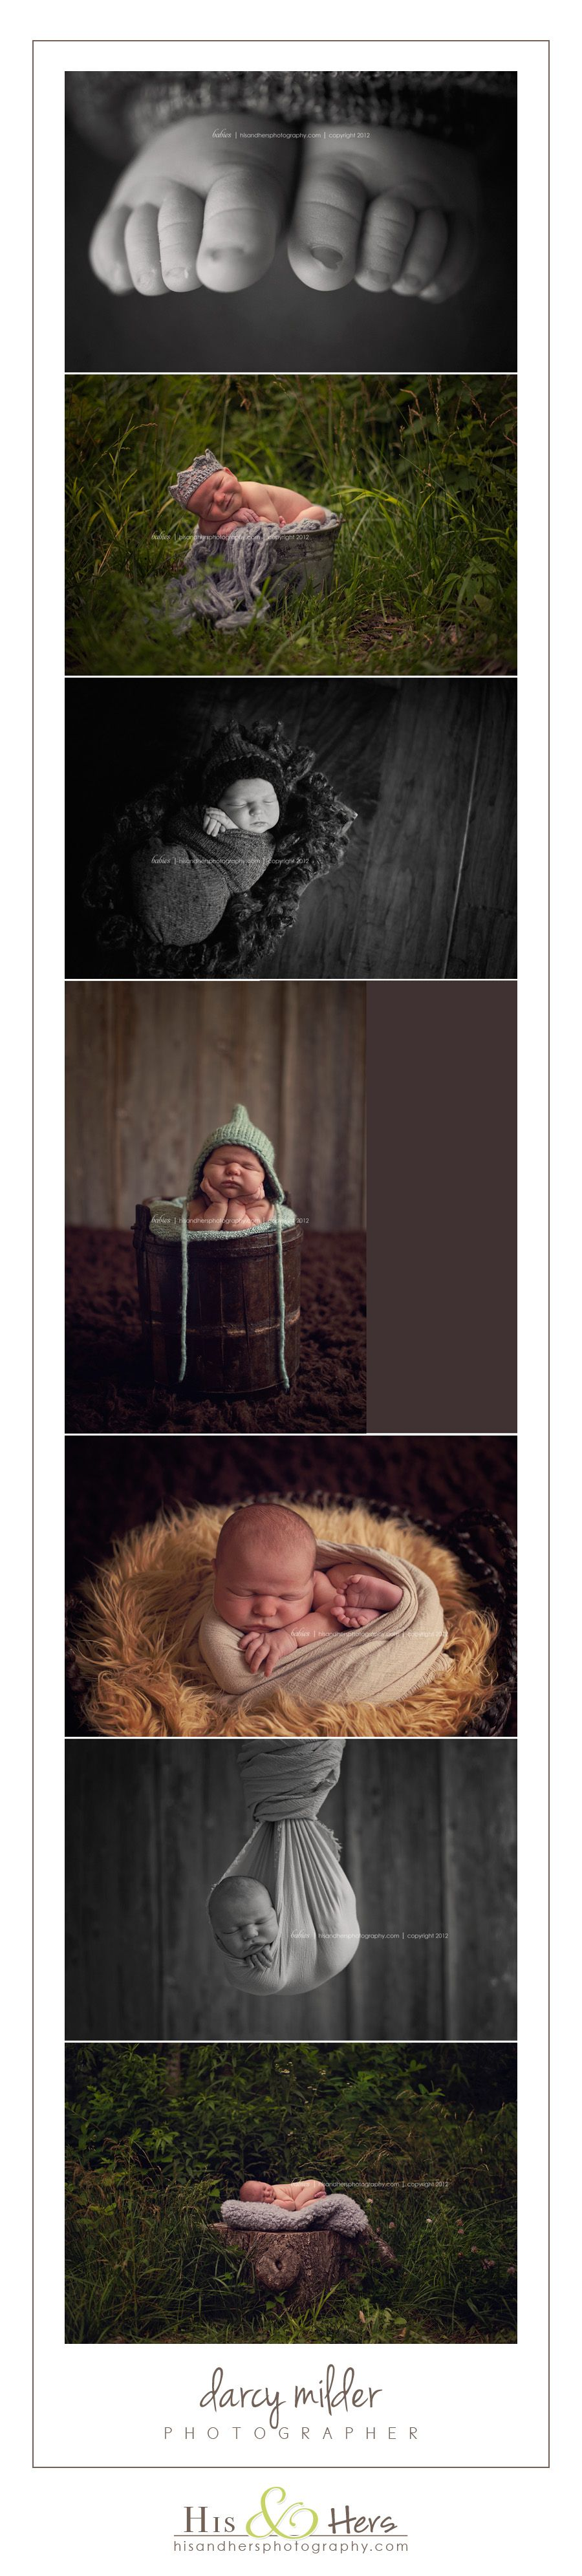 newborn photographer des moines iowa, baby infant portraits pictures, Darcy Milder His & Hers